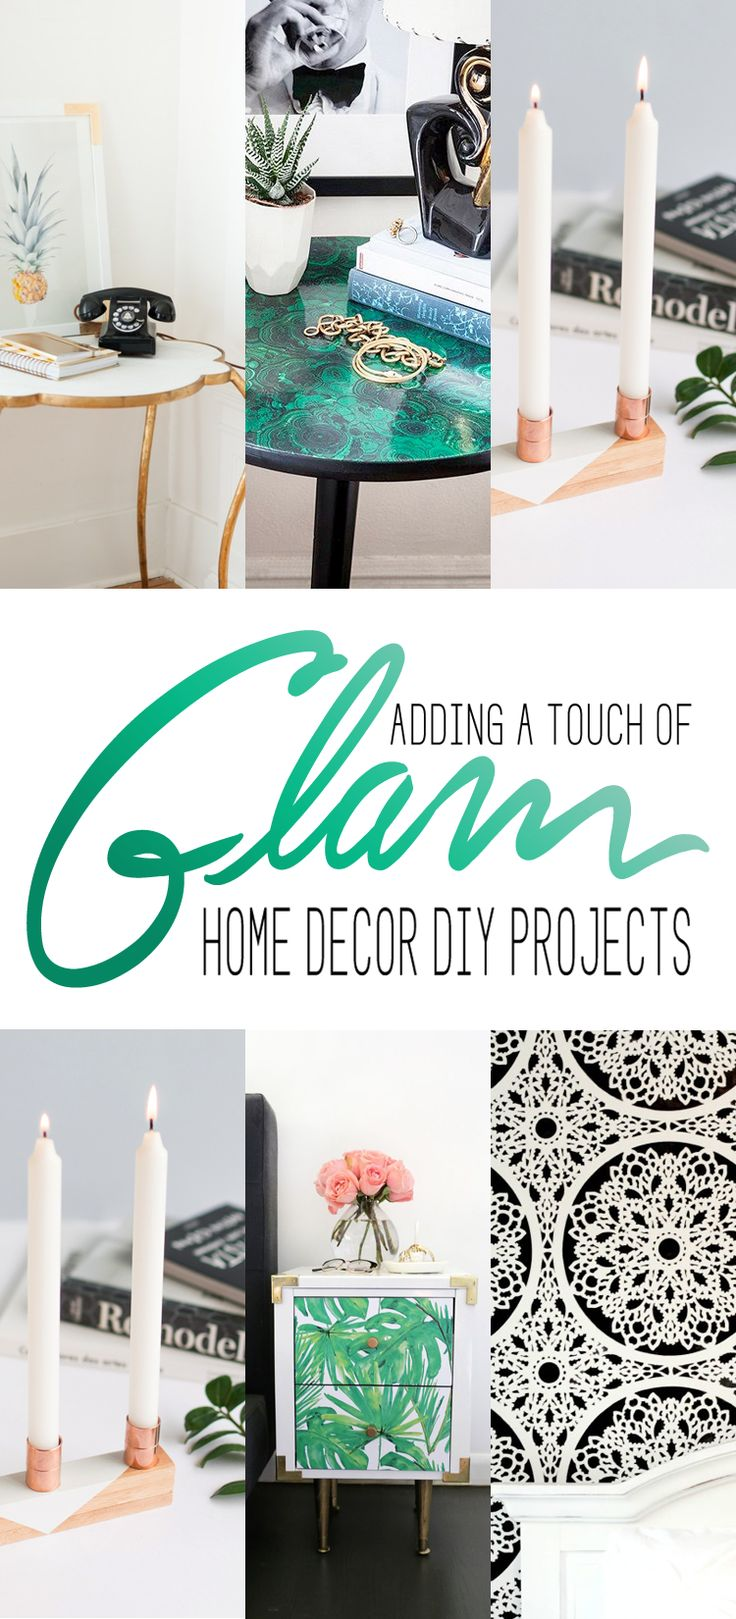 Touch Of Glam Home Decor Diy Projects The Cottage Market Popular Pins Pinterest